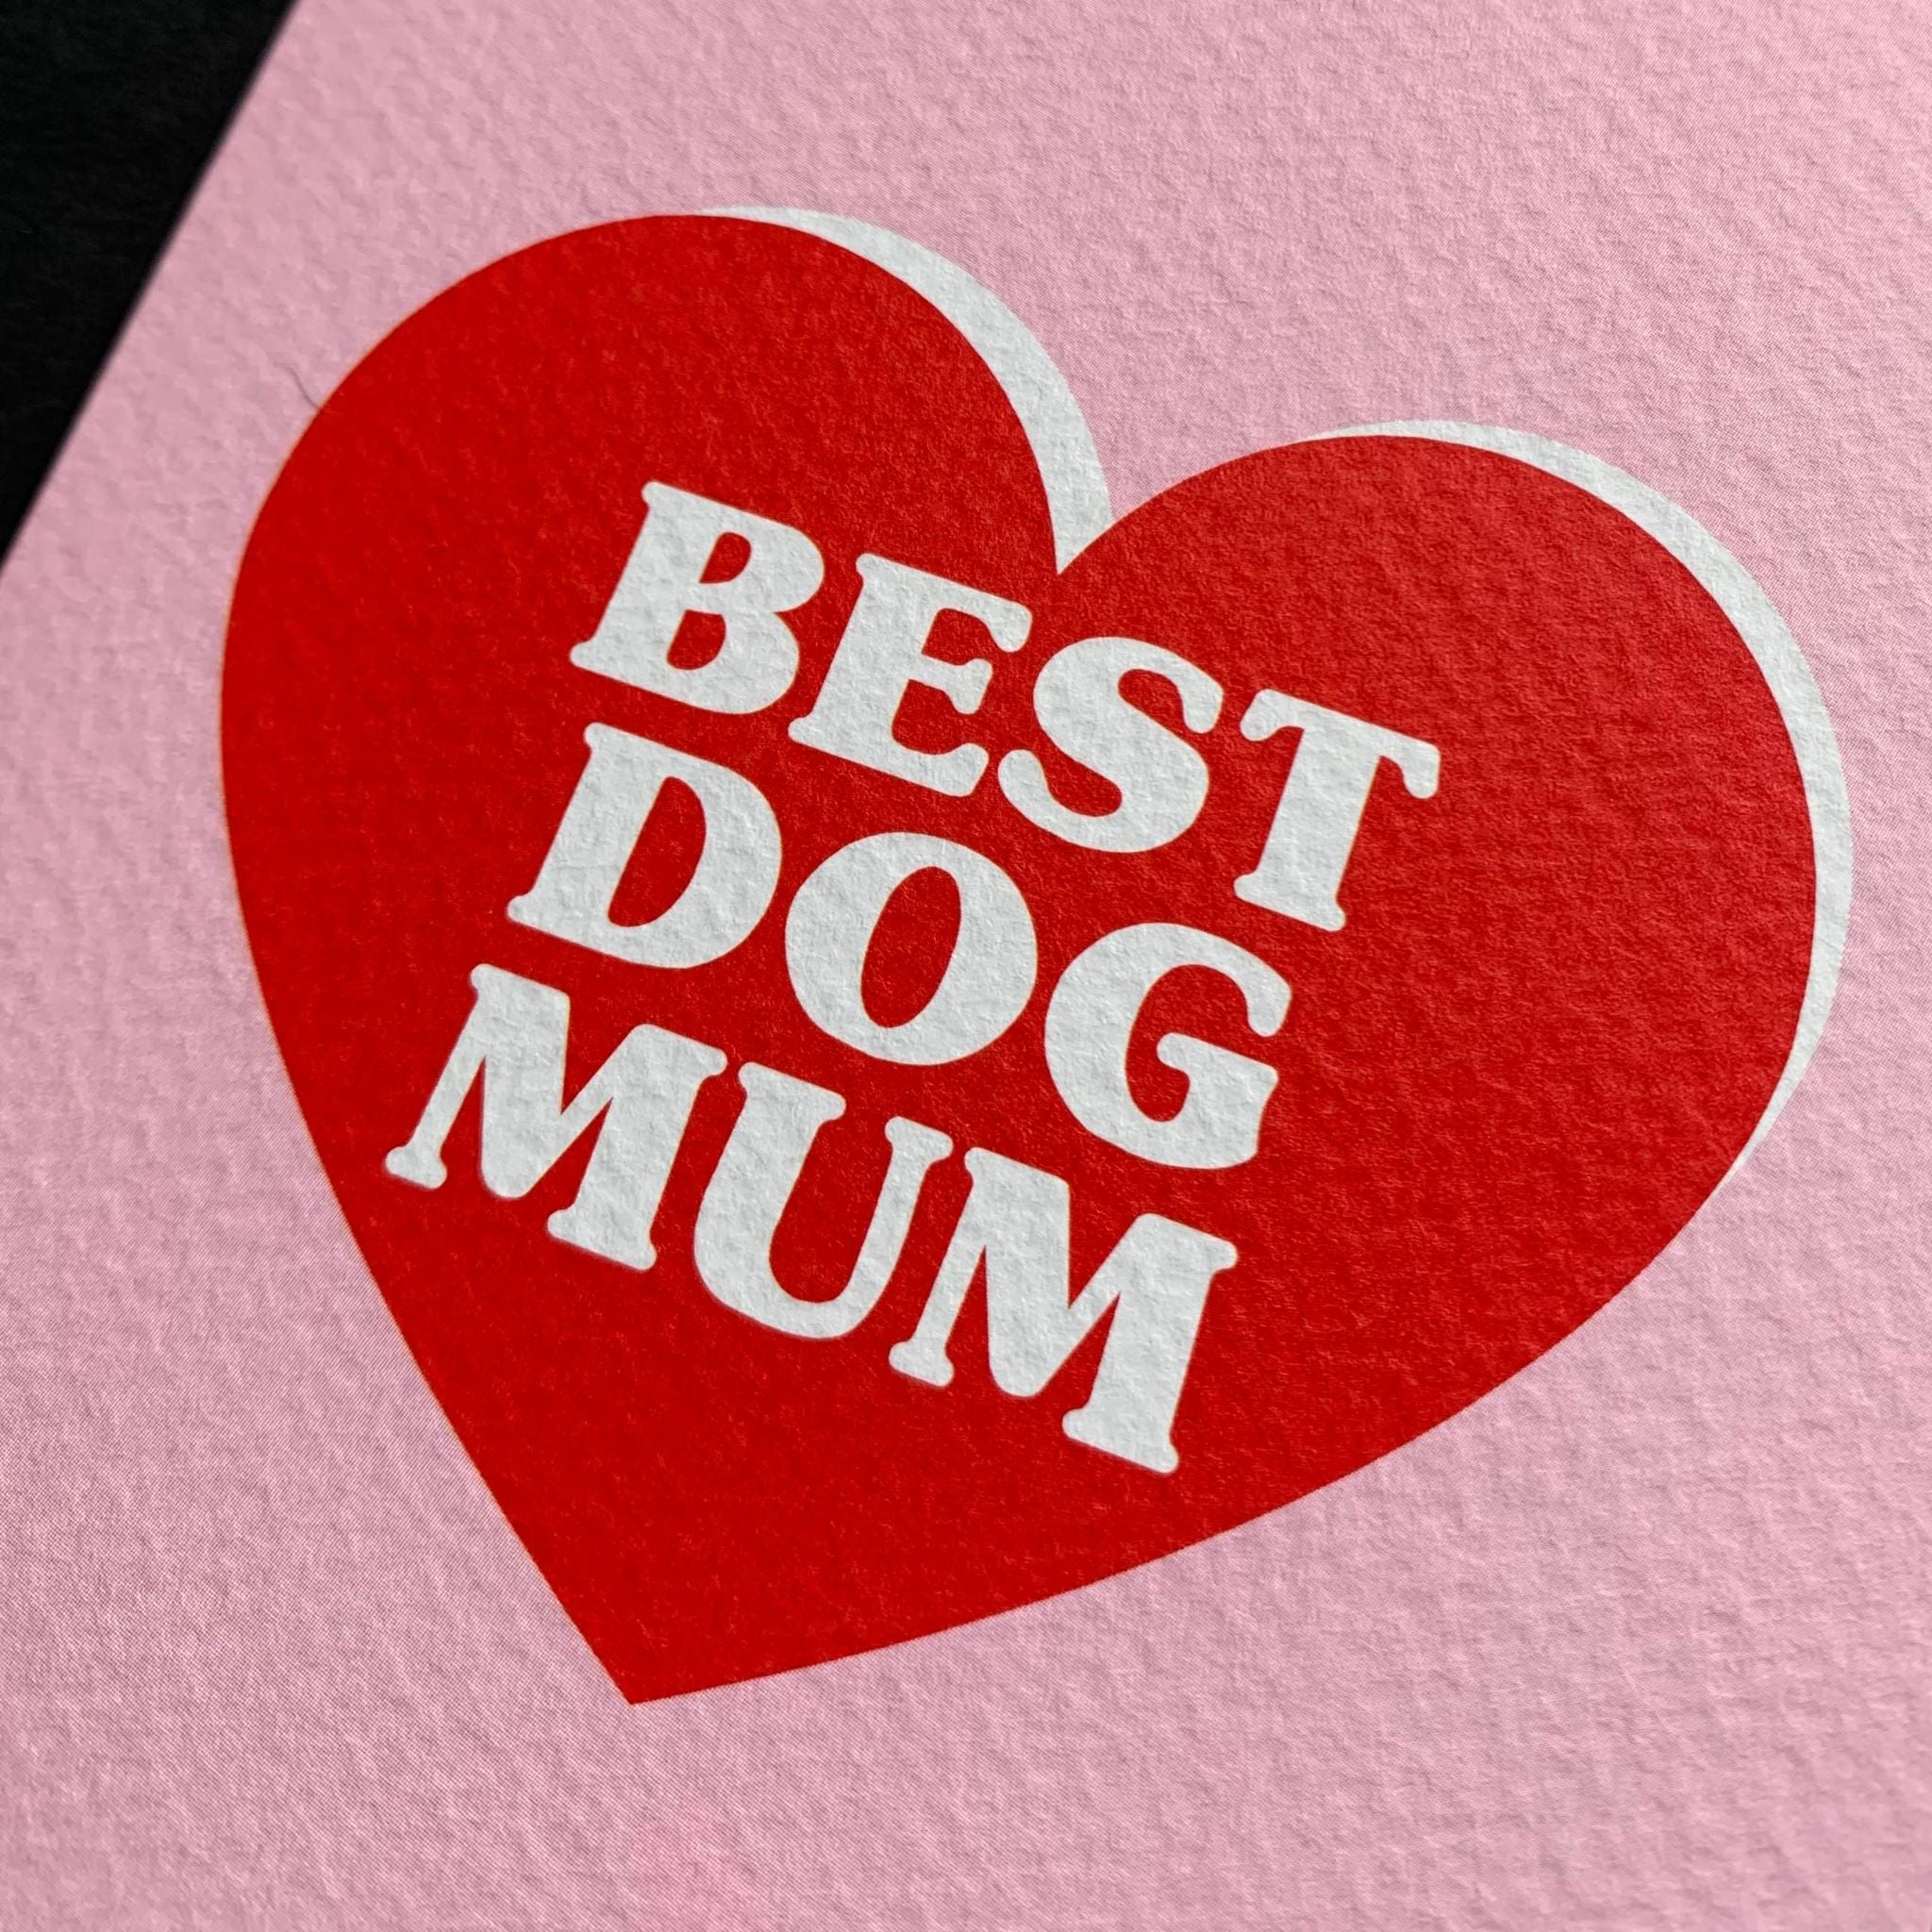 Best Dog Mum Card